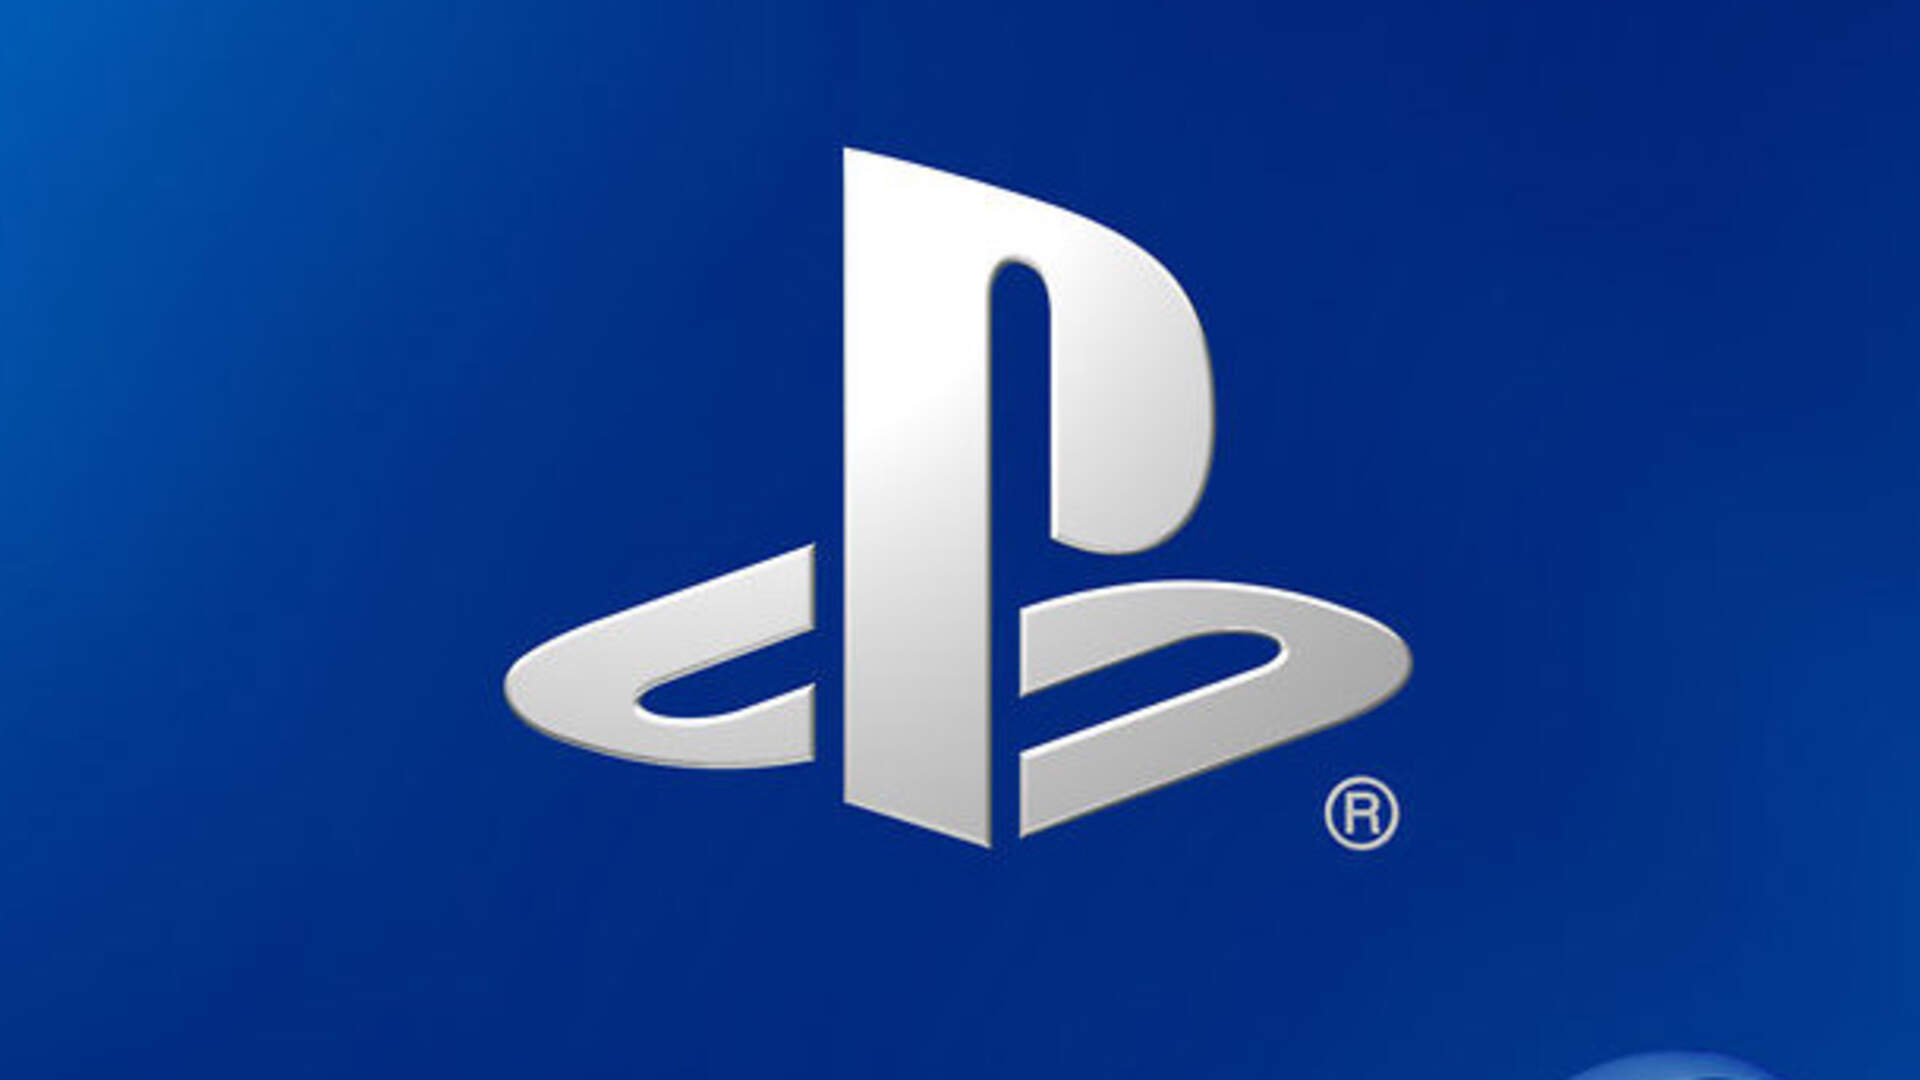 Report: PlayStation 5 Rumors are Swirling, But a 2018 Release Date Appears Unlikely